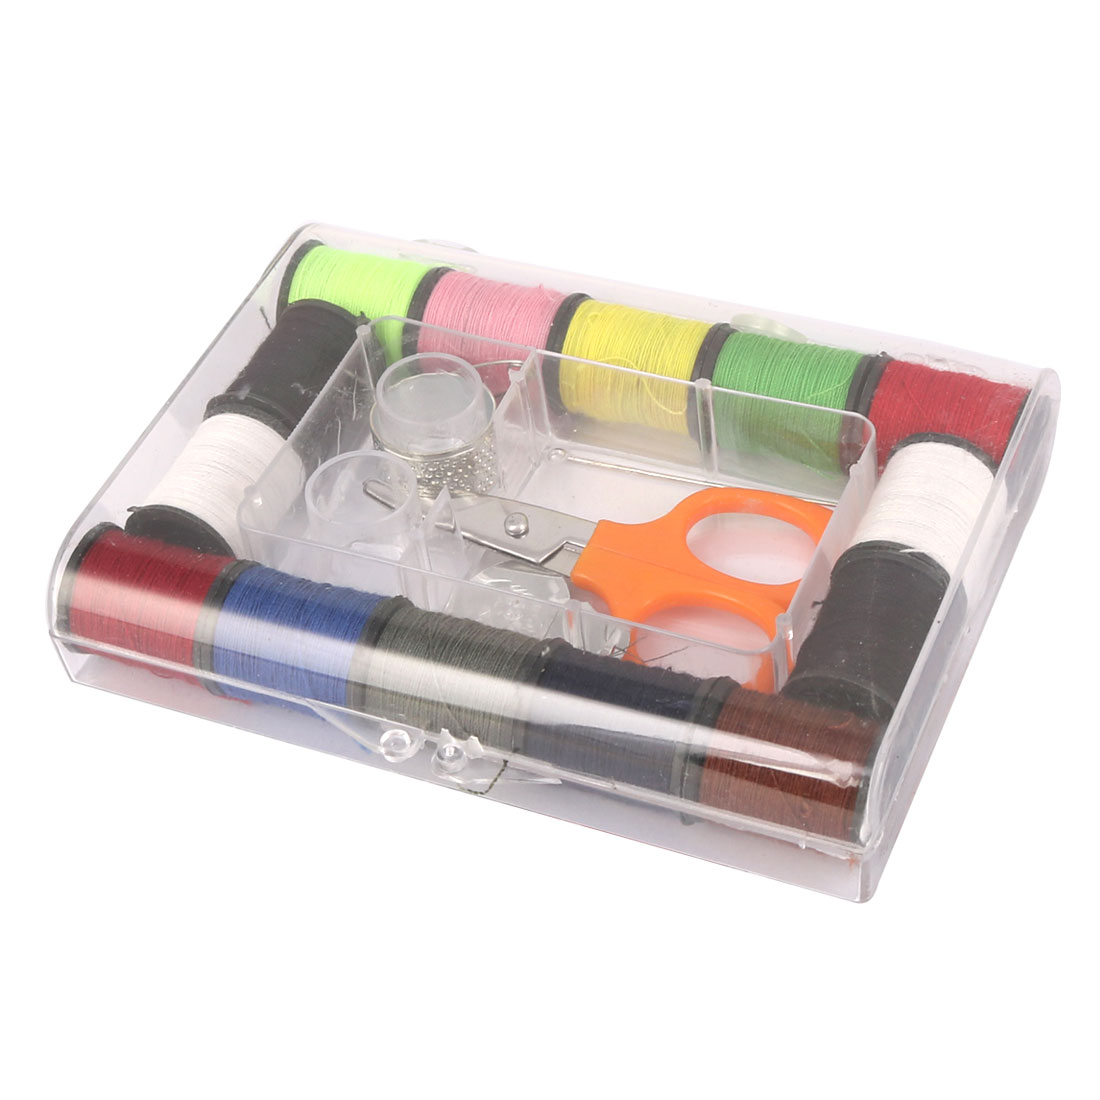 Home Travel Rectangle Box Assorted Color Thread Spool Needle Sewing Kit Set